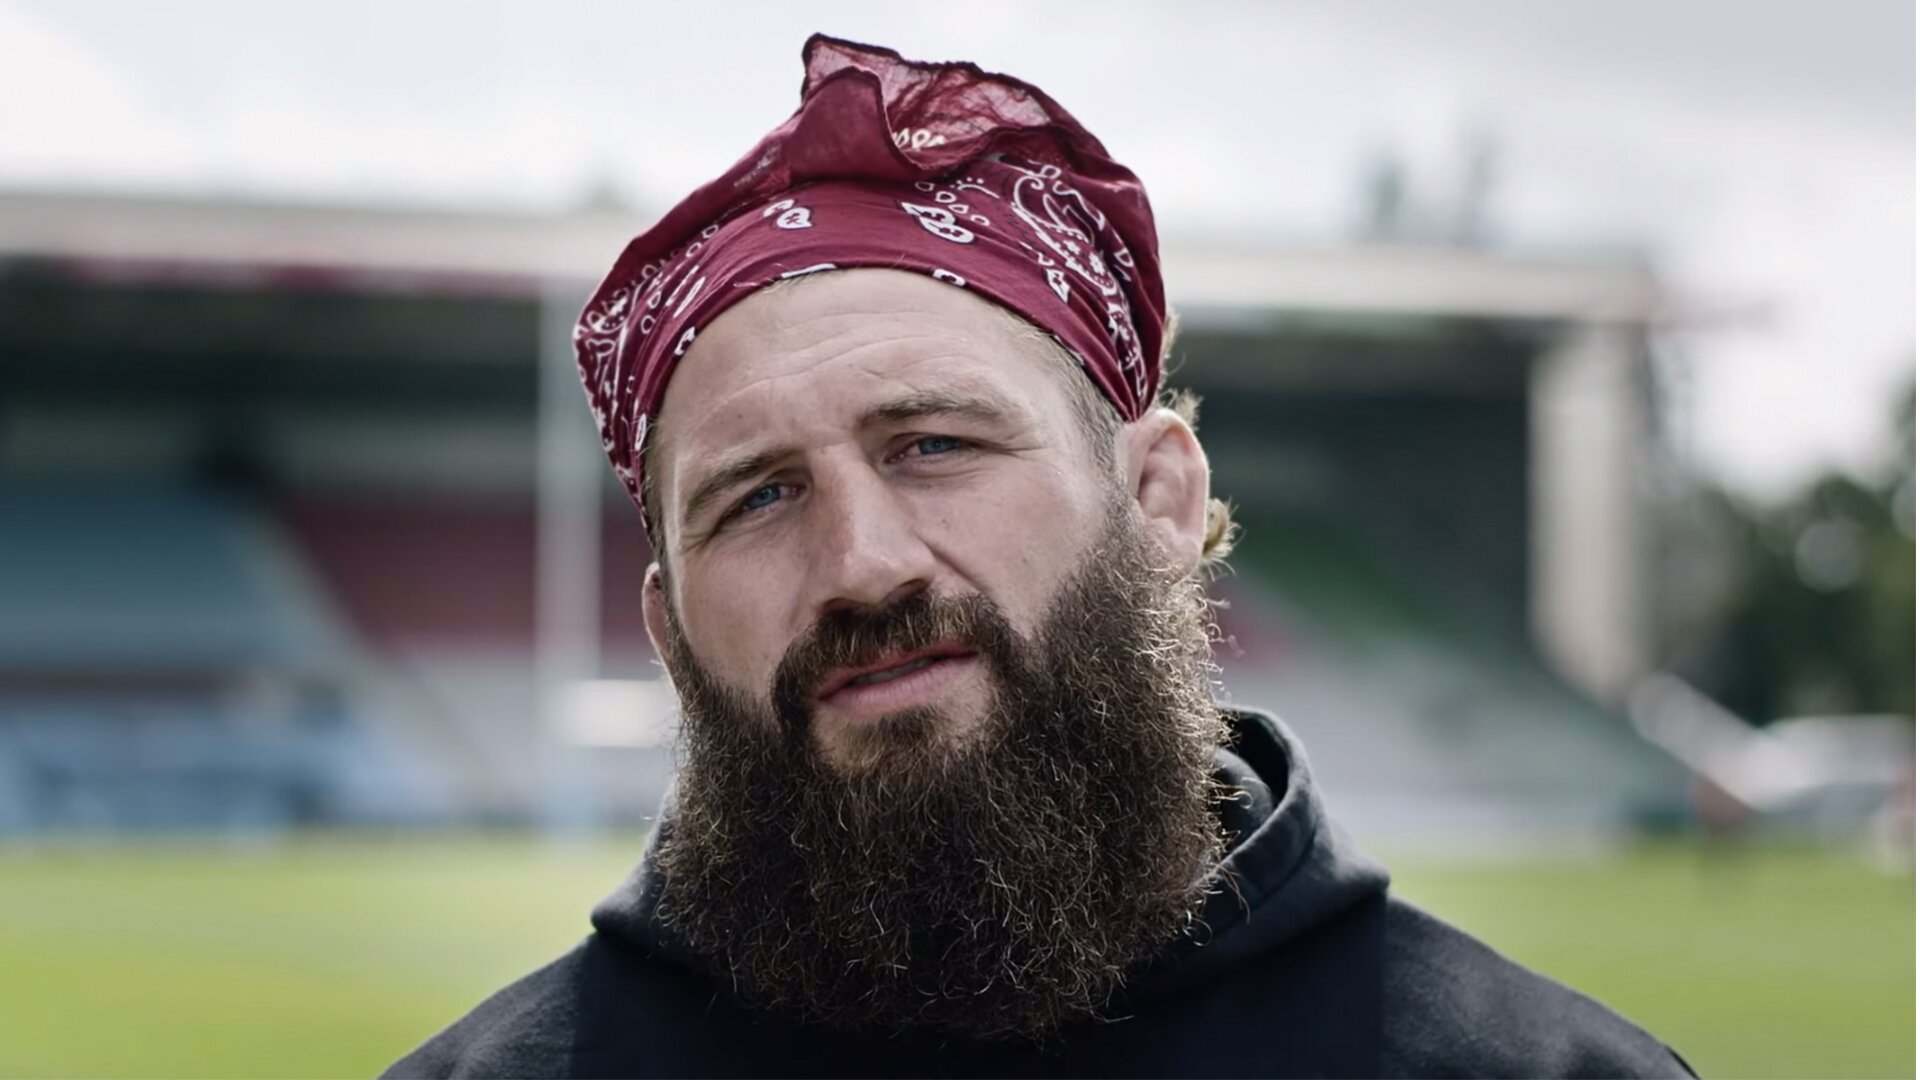 Joe Marler surprises everyone in new commercial which has just been released